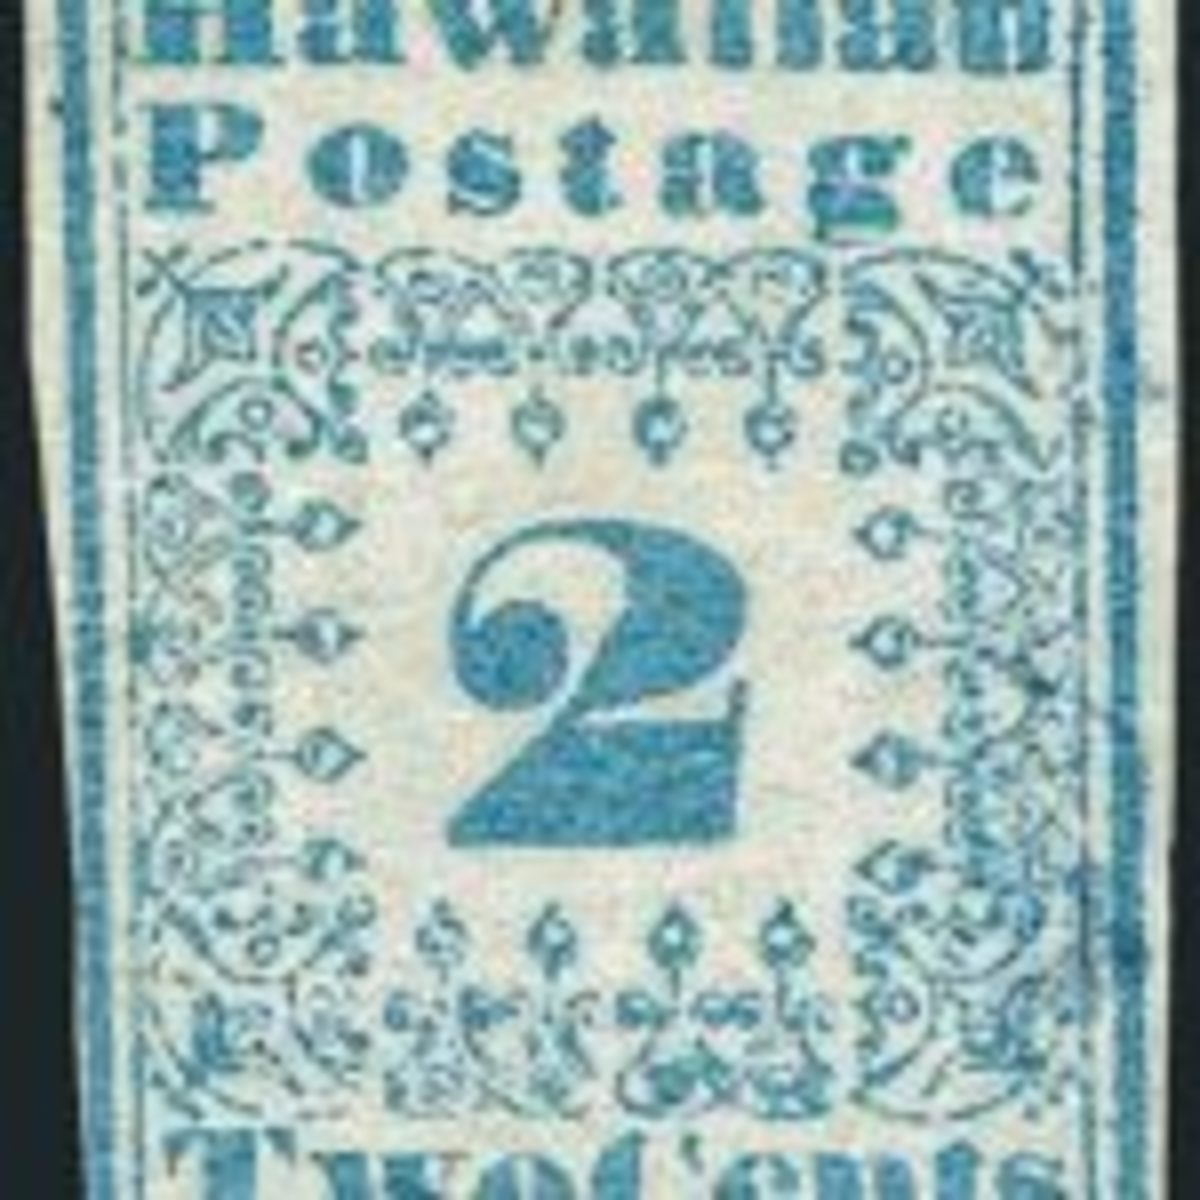 2-cent blue Hawaiian Missionary stamp from the Bill Gross Collection. Photo courtesy Robert A. Siegel Auction Galleries